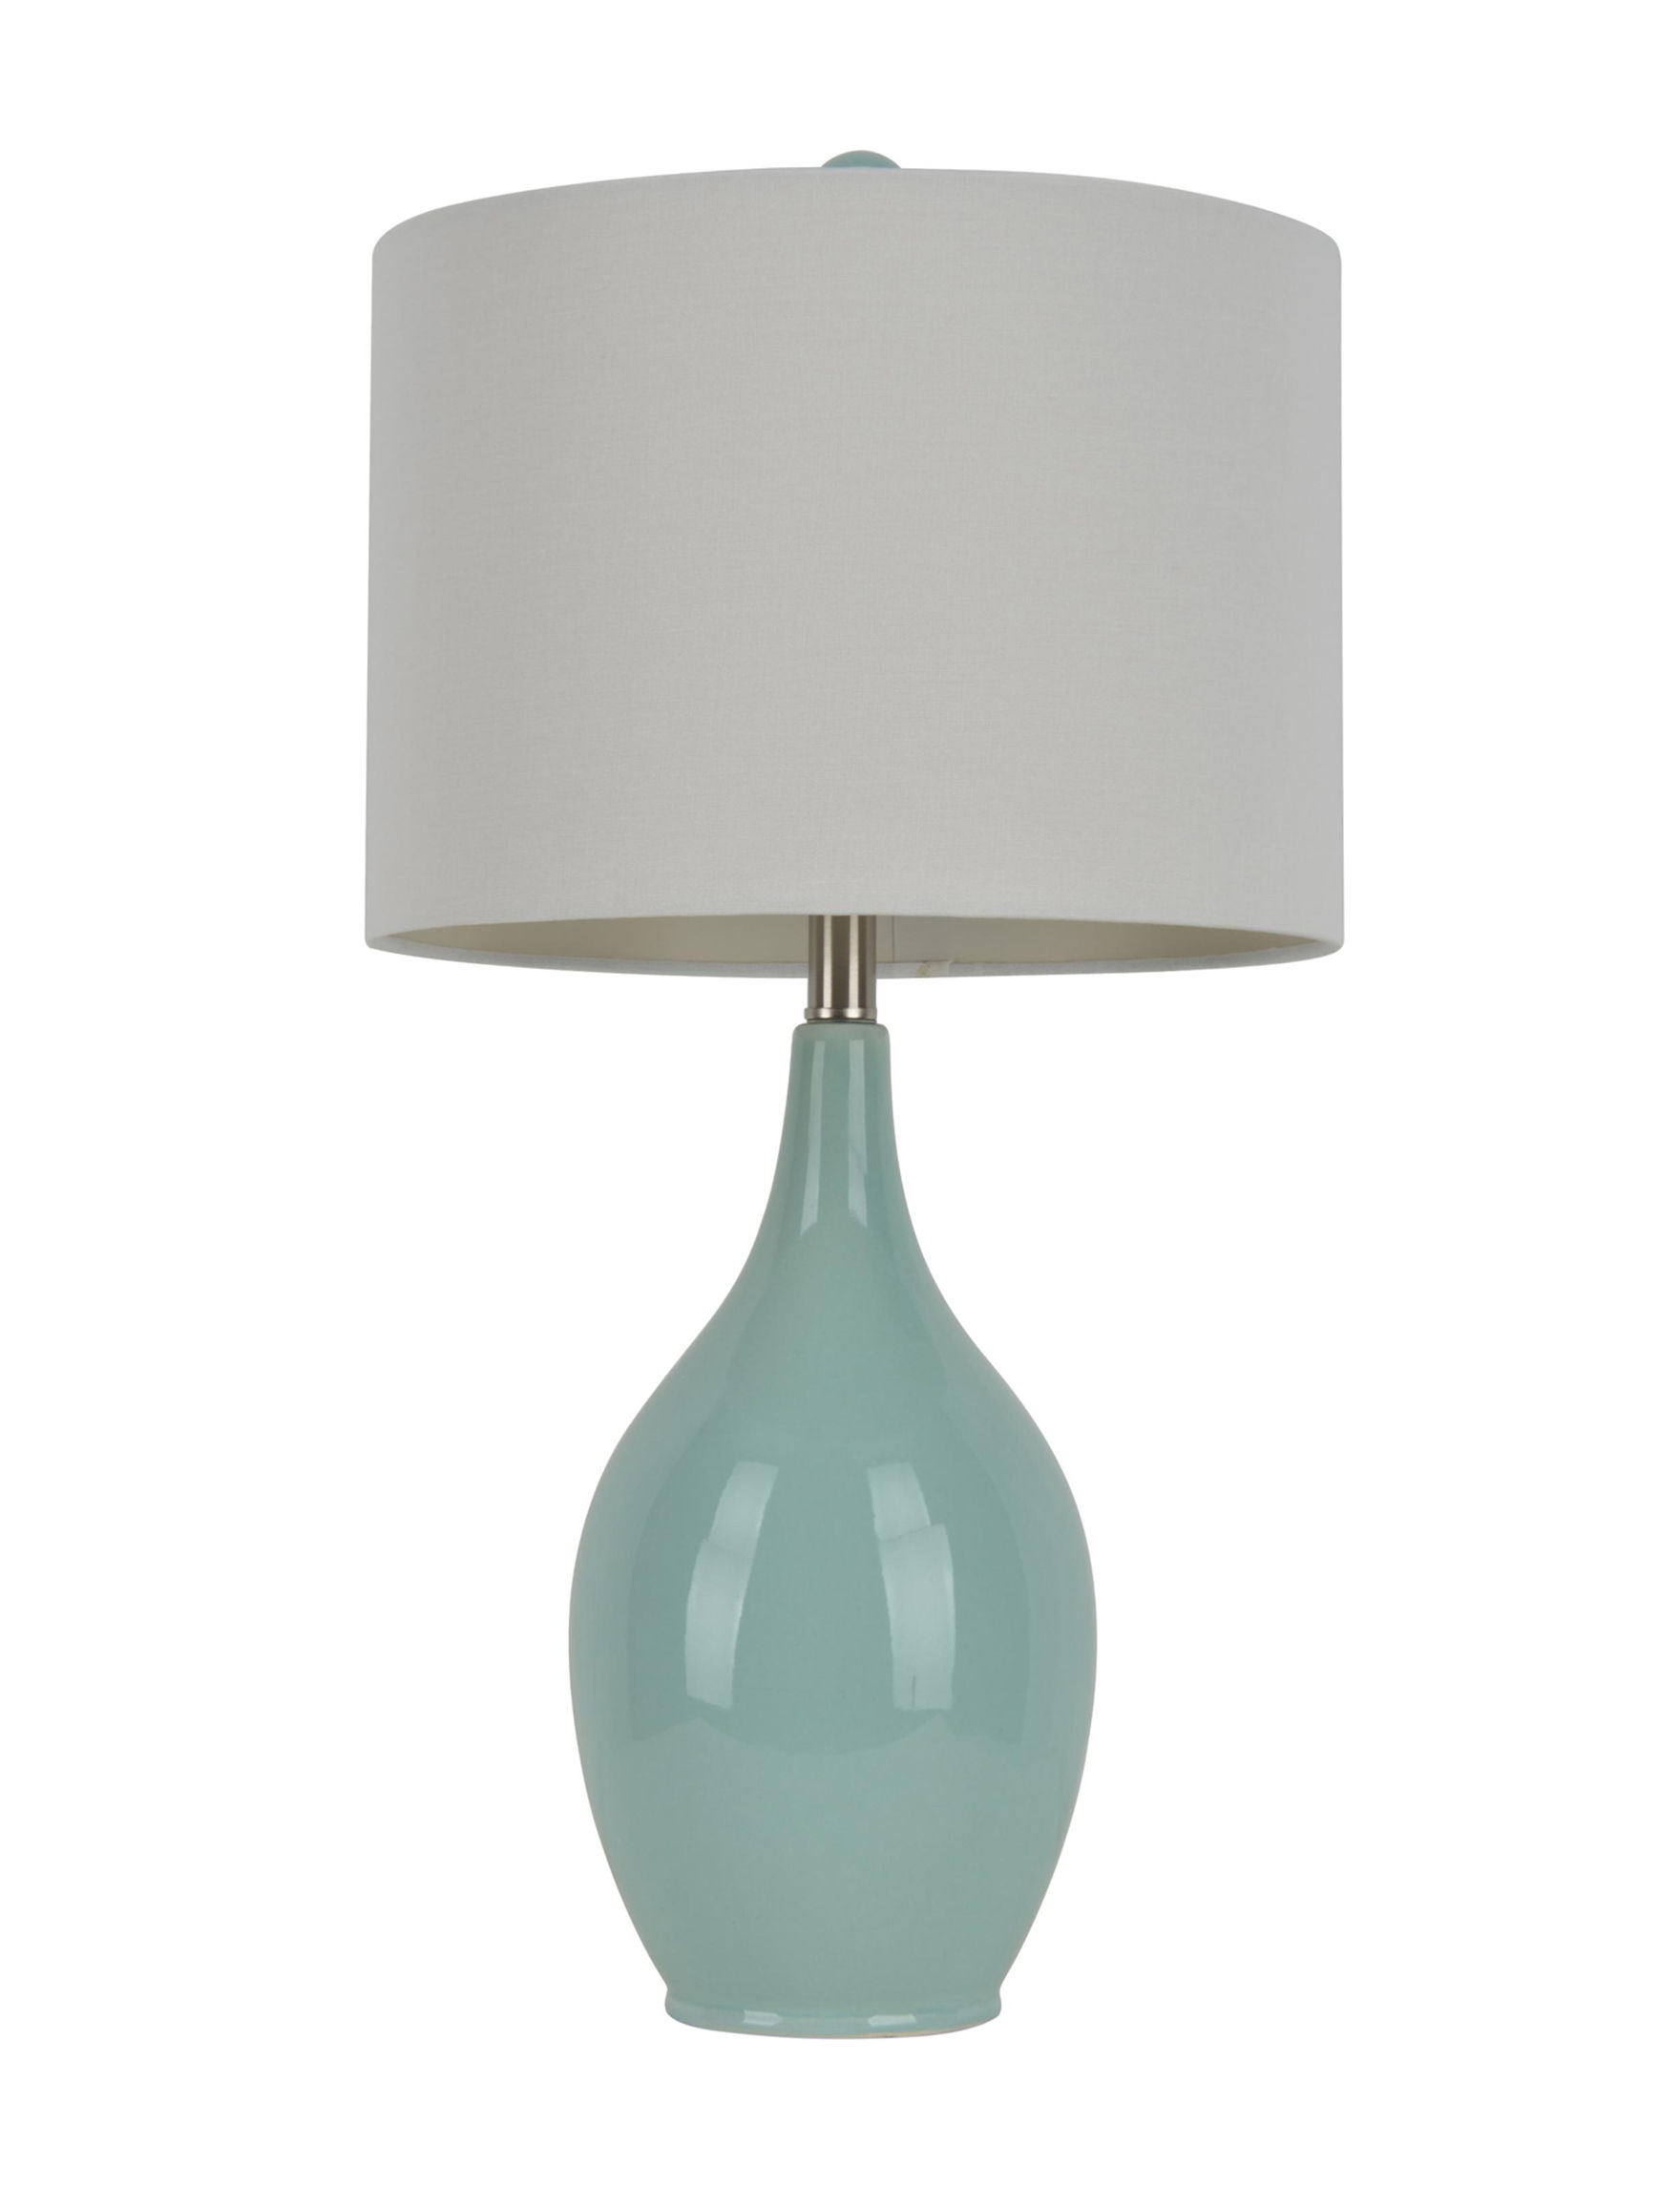 Decor Therapy Blue Table Lamps Lighting & Lamps